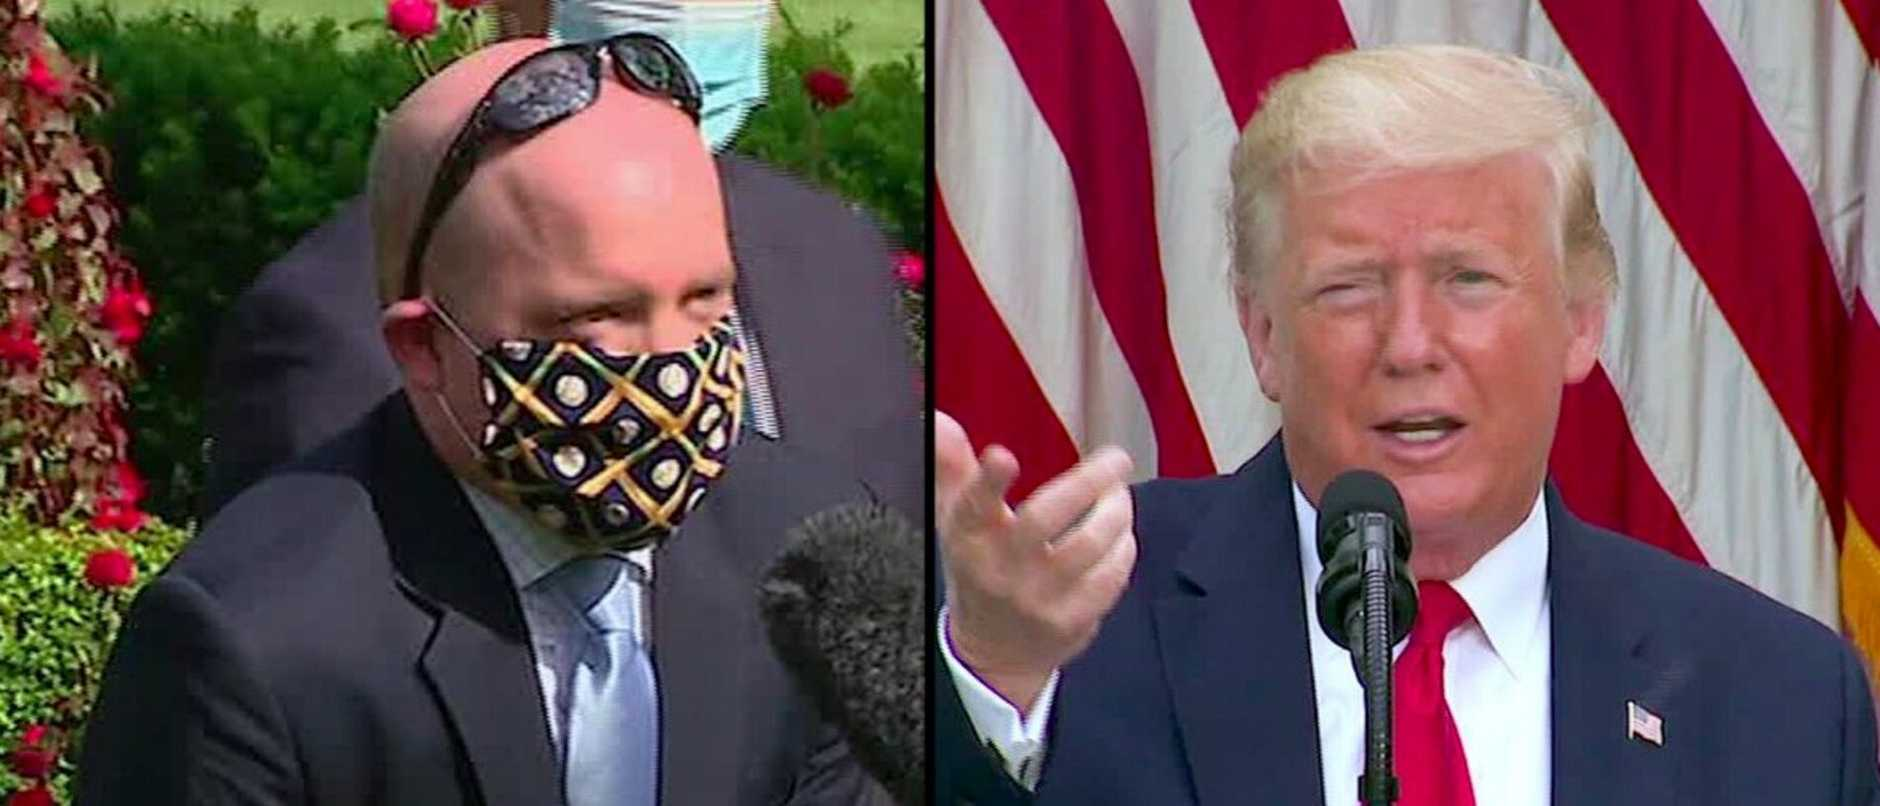 Donald Trump has mocked a reporter who declined to remove his mask before asking the President a question.